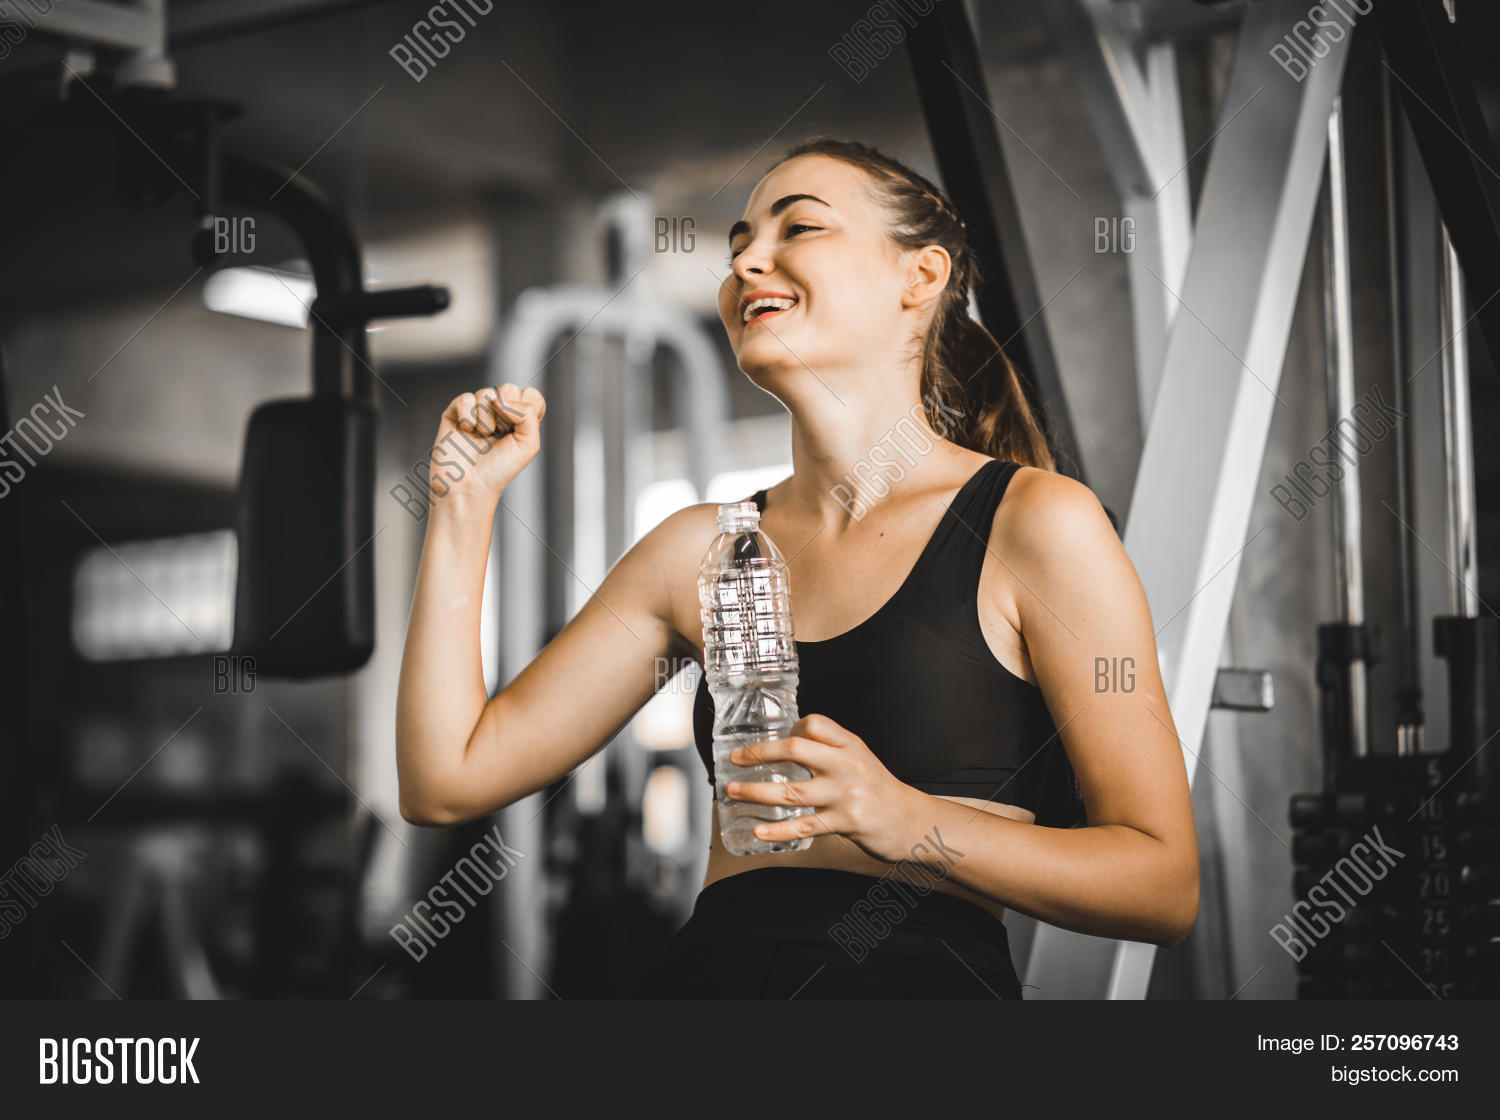 1,after,athlete,bcaa,bench,body,bodybuilder,bottle,break,cardio,club,diet,drink,effort,equipment,exercise,female,fitness,girl,goal,gym,happy,health,healthy,instructor,lifestyle,machine,magnesium,motivation,people,protein,relax,shaker,slim,sport,sportive,sportswear,strong,sweat,towel,trainer,training,water,weight,woman,work,workout